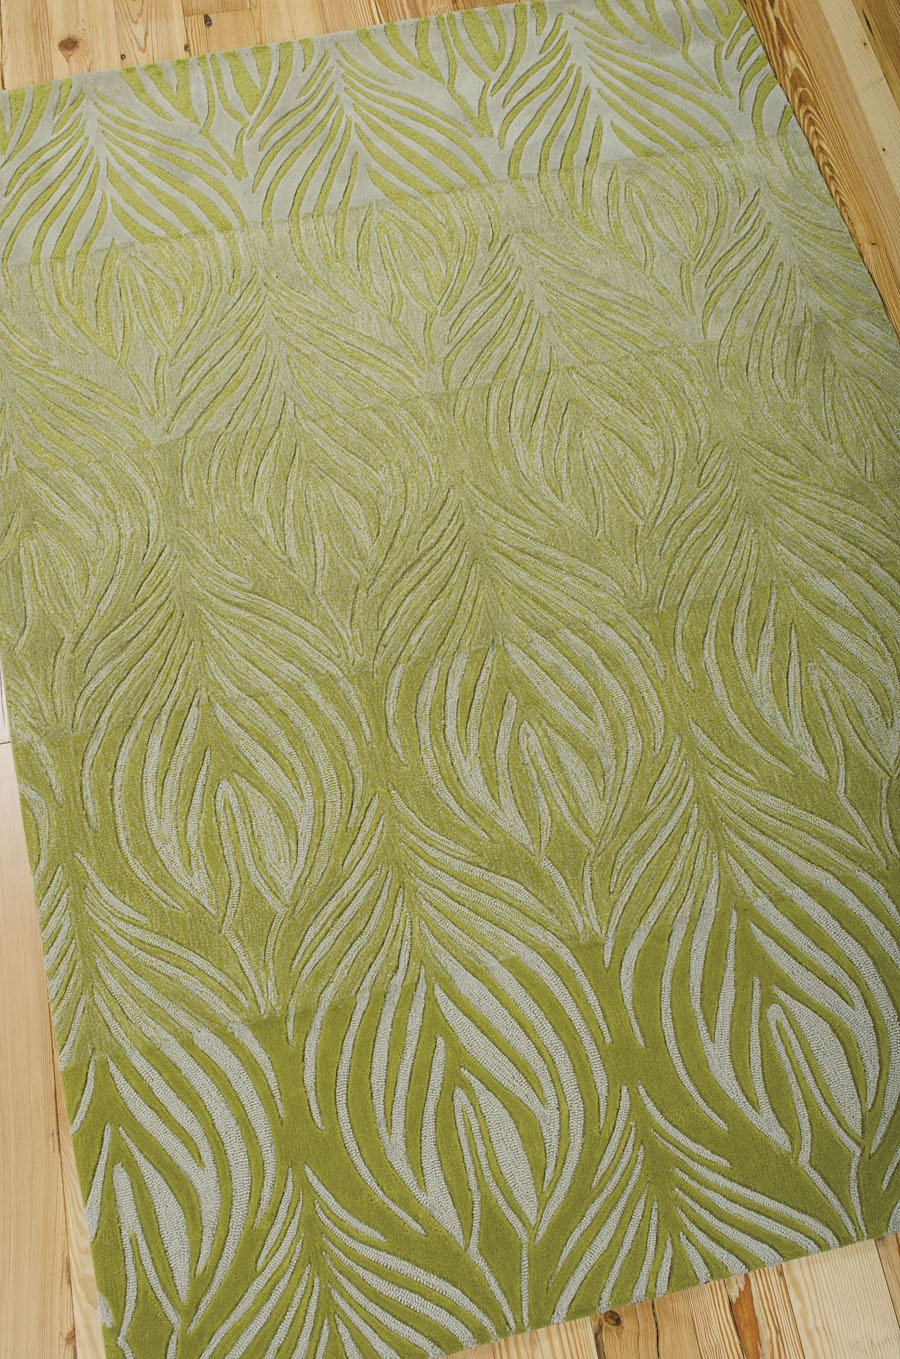 Contour Con06 Green Rug By Nourison